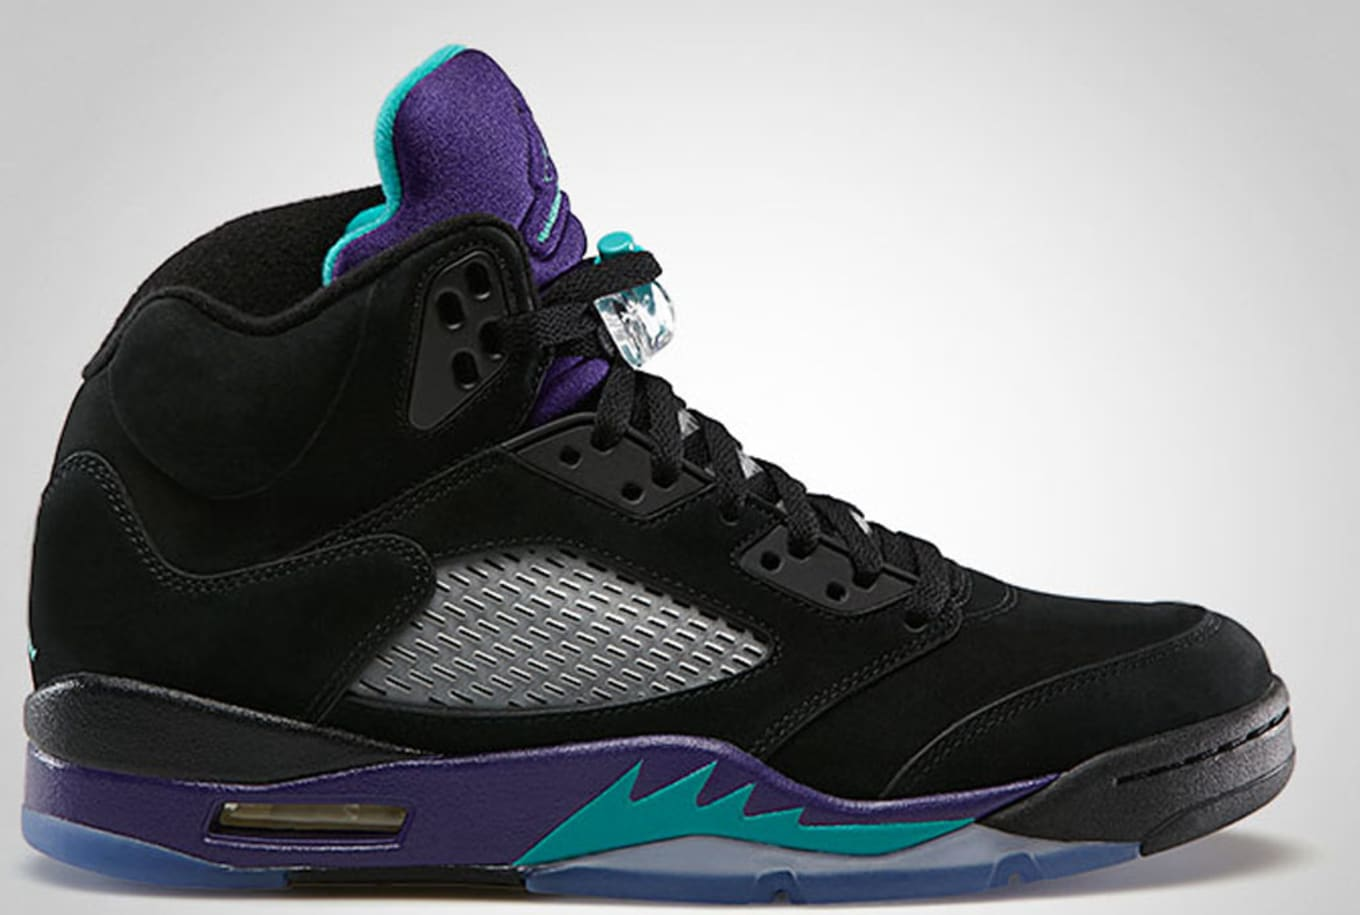 premium selection 1905e 597c6 Air Jordan 5 Retro  Black Grape